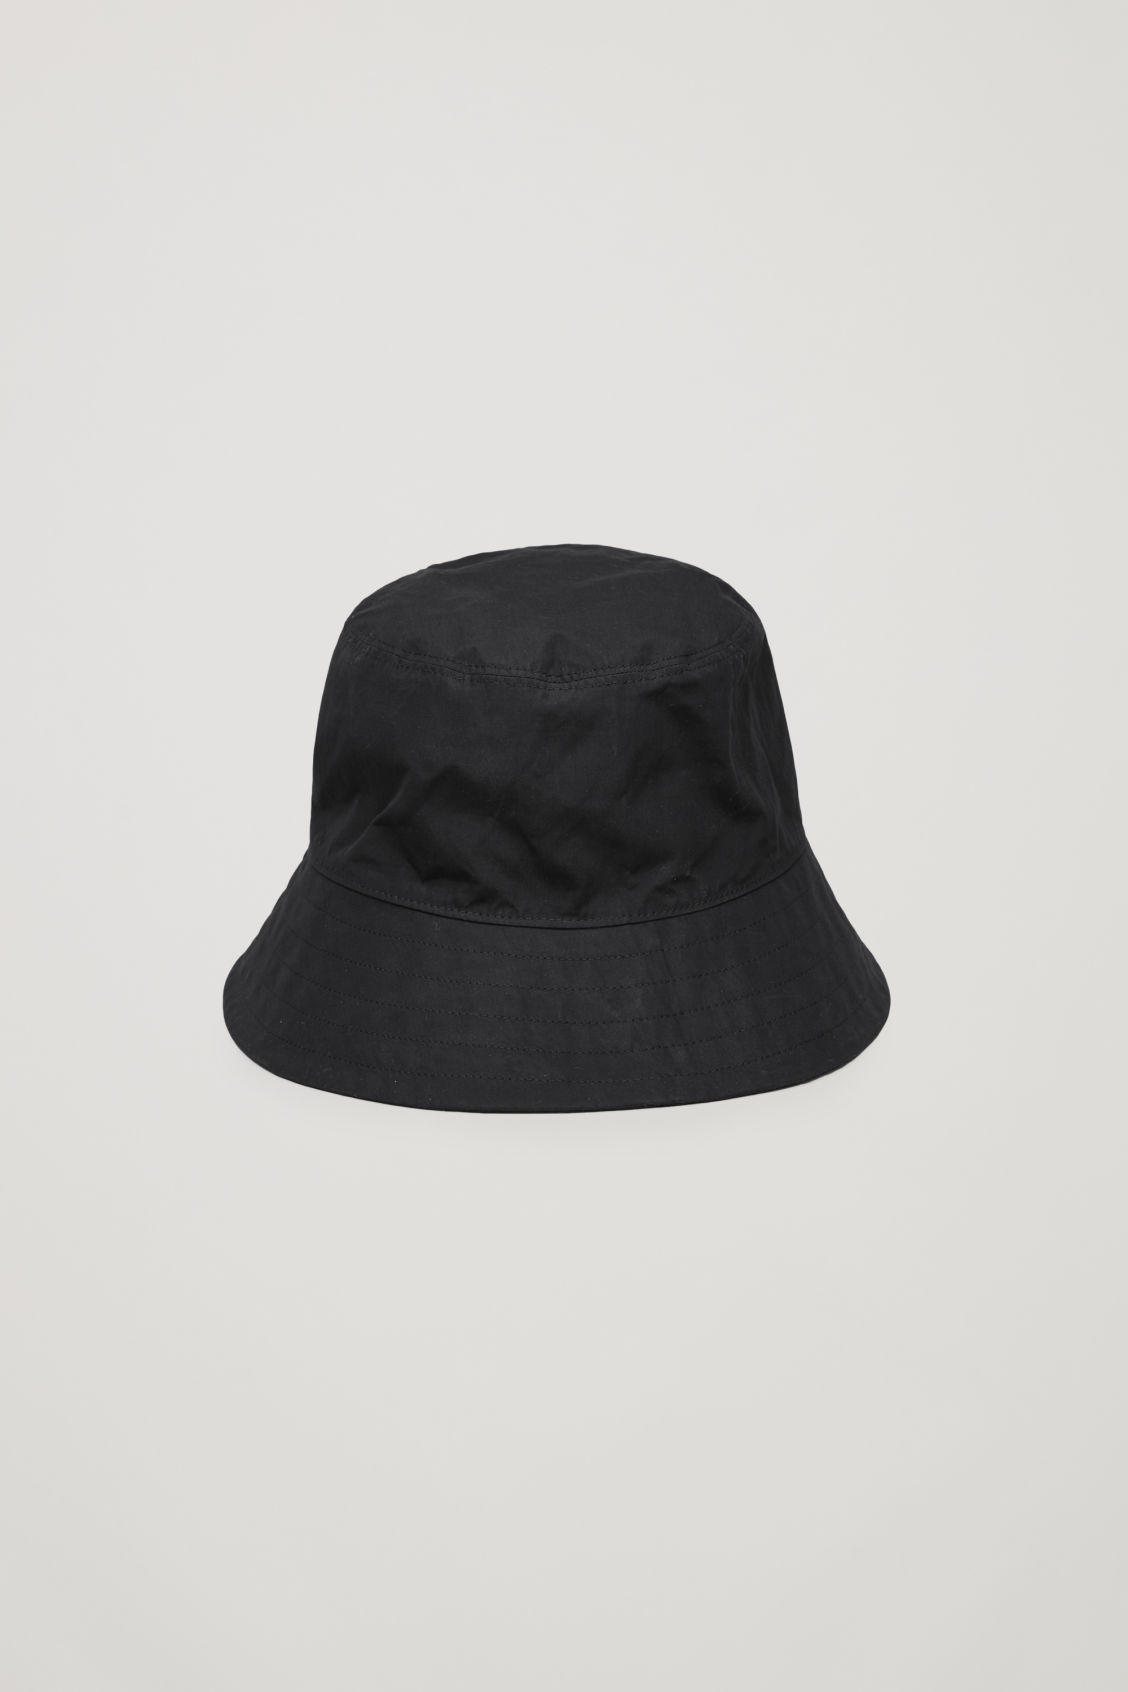 CANVAS BUCKET HAT - Black - Hats Scarves and Gloves - COS 8abbcfd1d6b